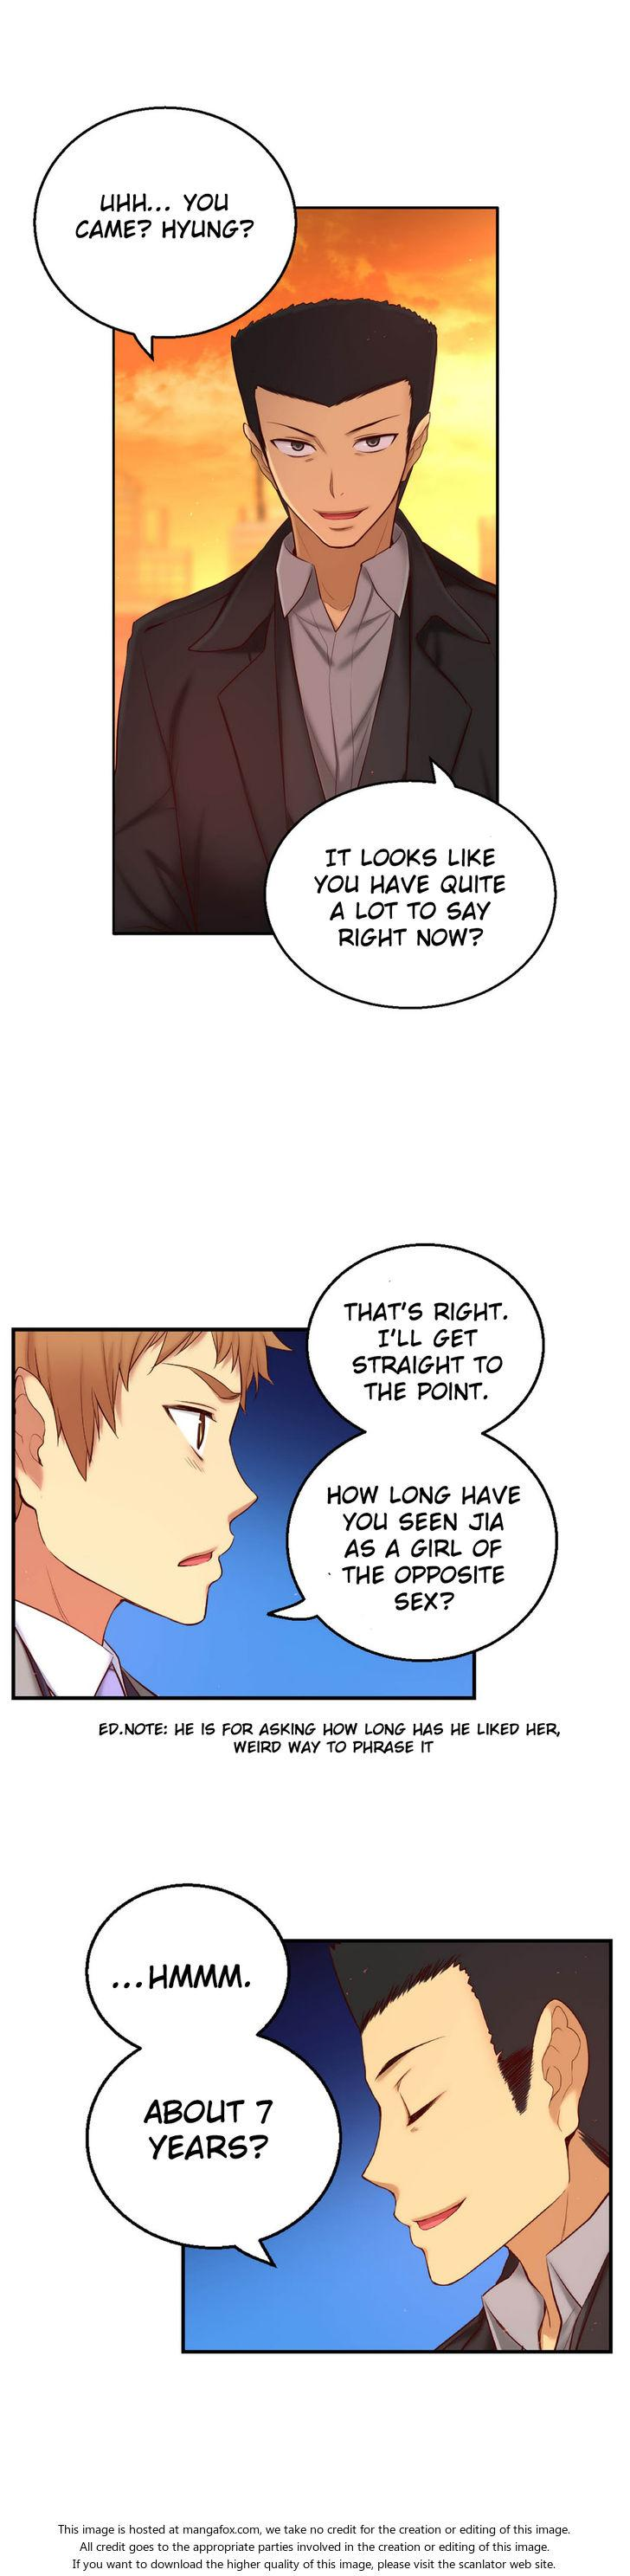 [Donggul Gom] She is Young (English) Part 1/2 1448